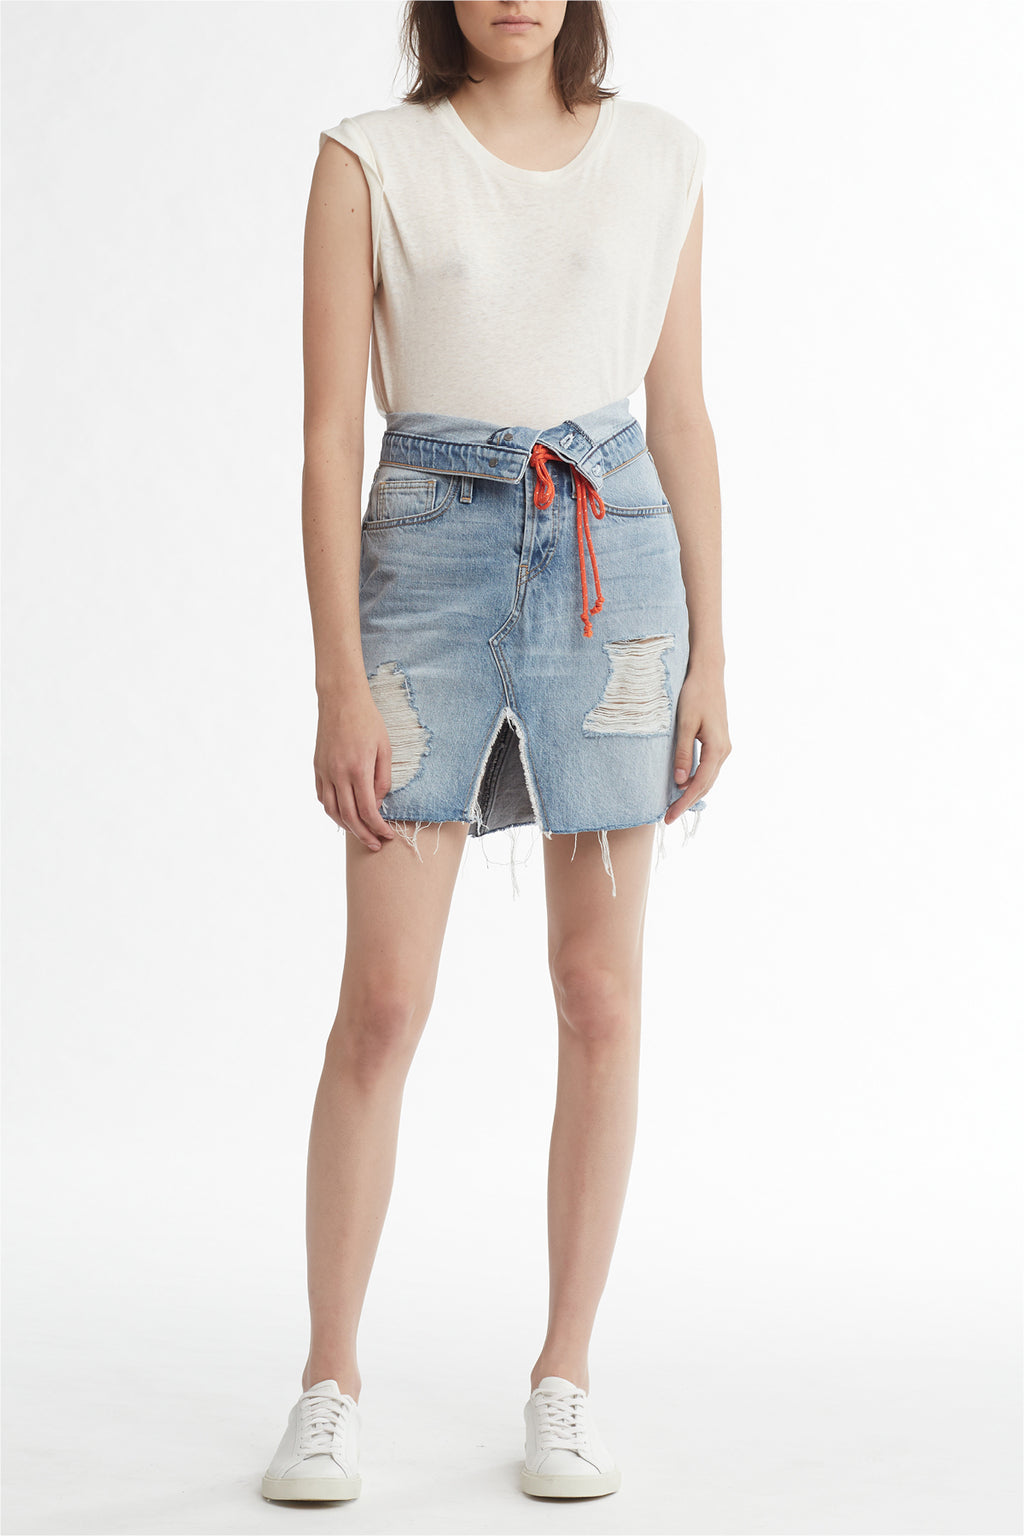 SLOANE KNEE-LENGTH DENIM SKIRT - OVERTHROW - Image 1